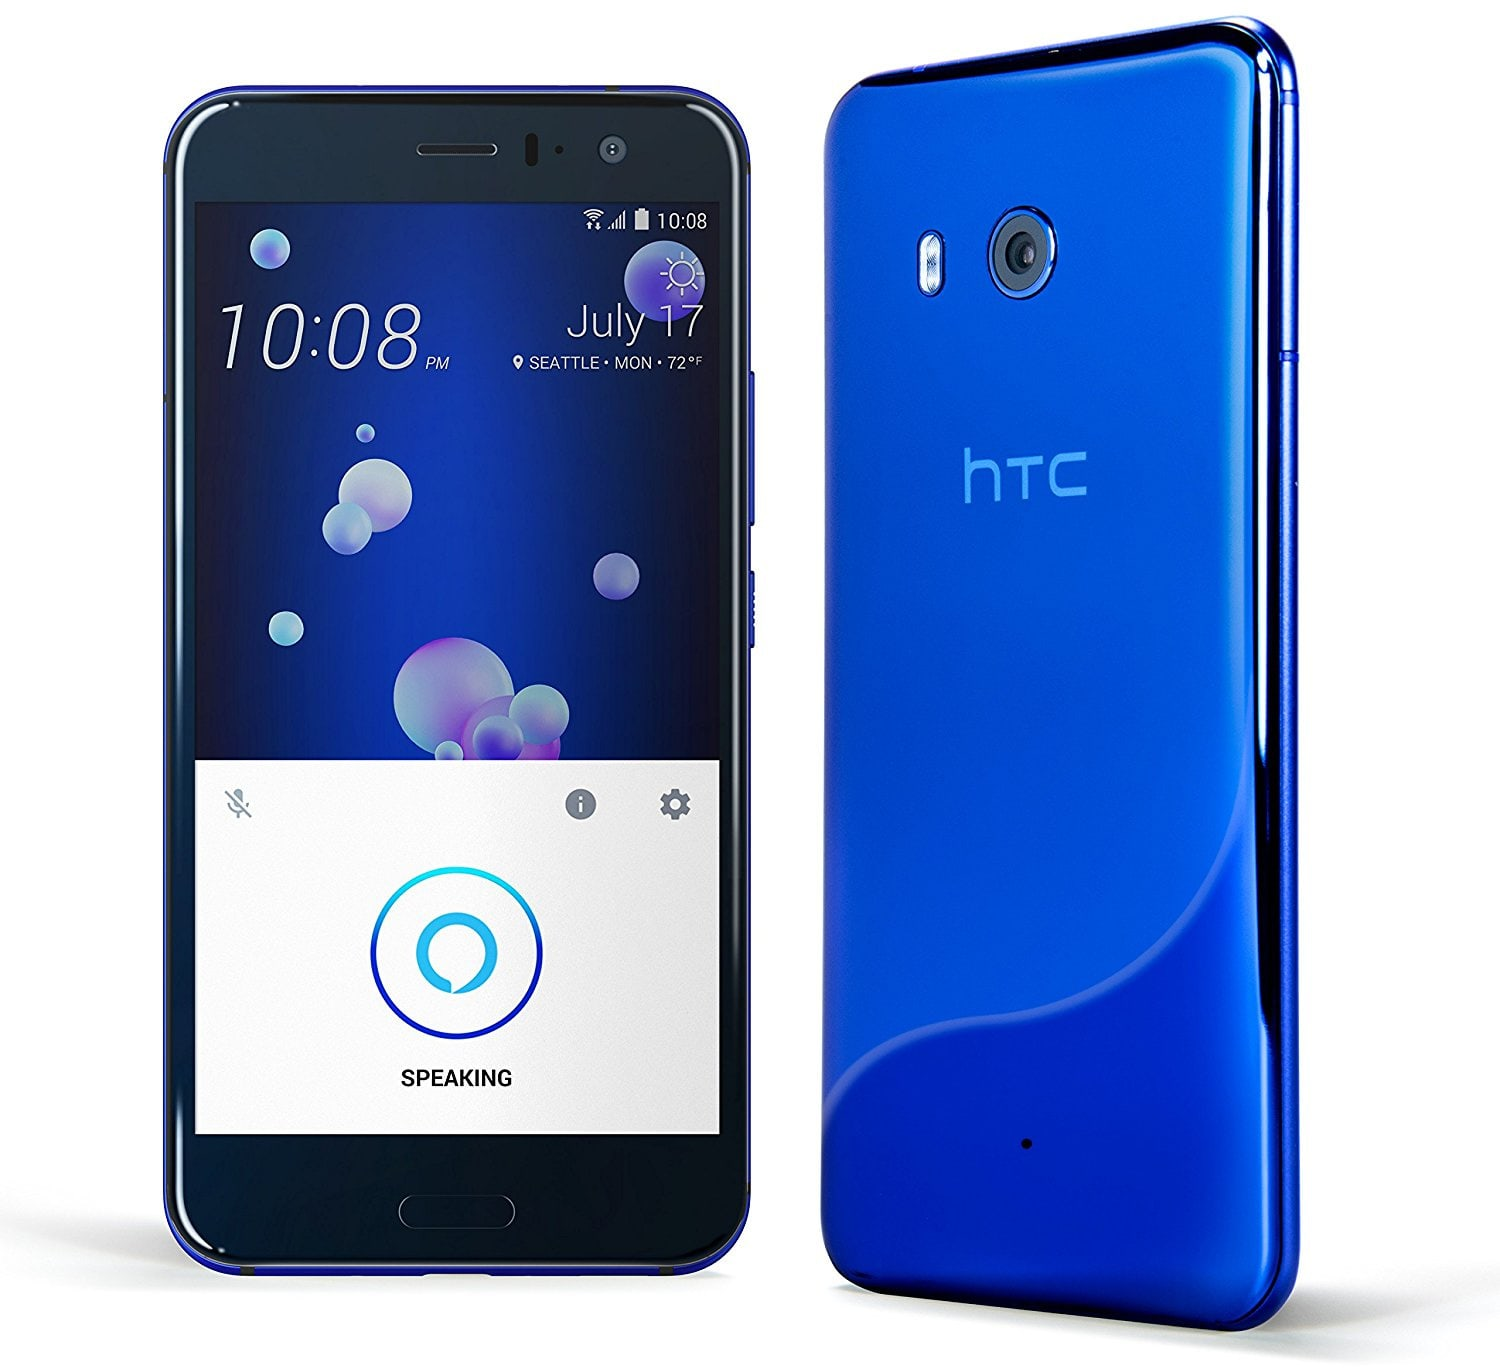 HTC U11 review: More than just gimmicks